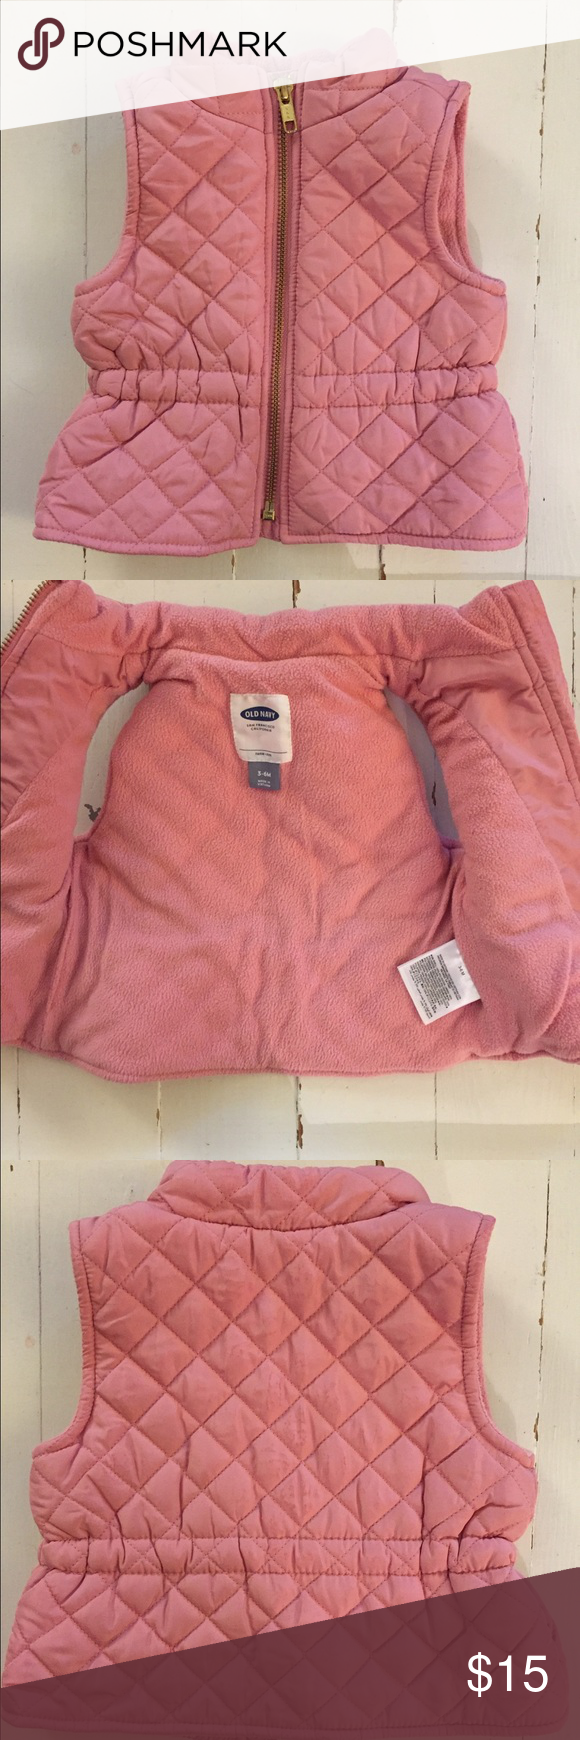 Pink Puffy Vest size: 3-6mo, old navy Gently used, color: kitten kisses, perfect for layering with a onesie! Old Navy Jackets & Coats Vests